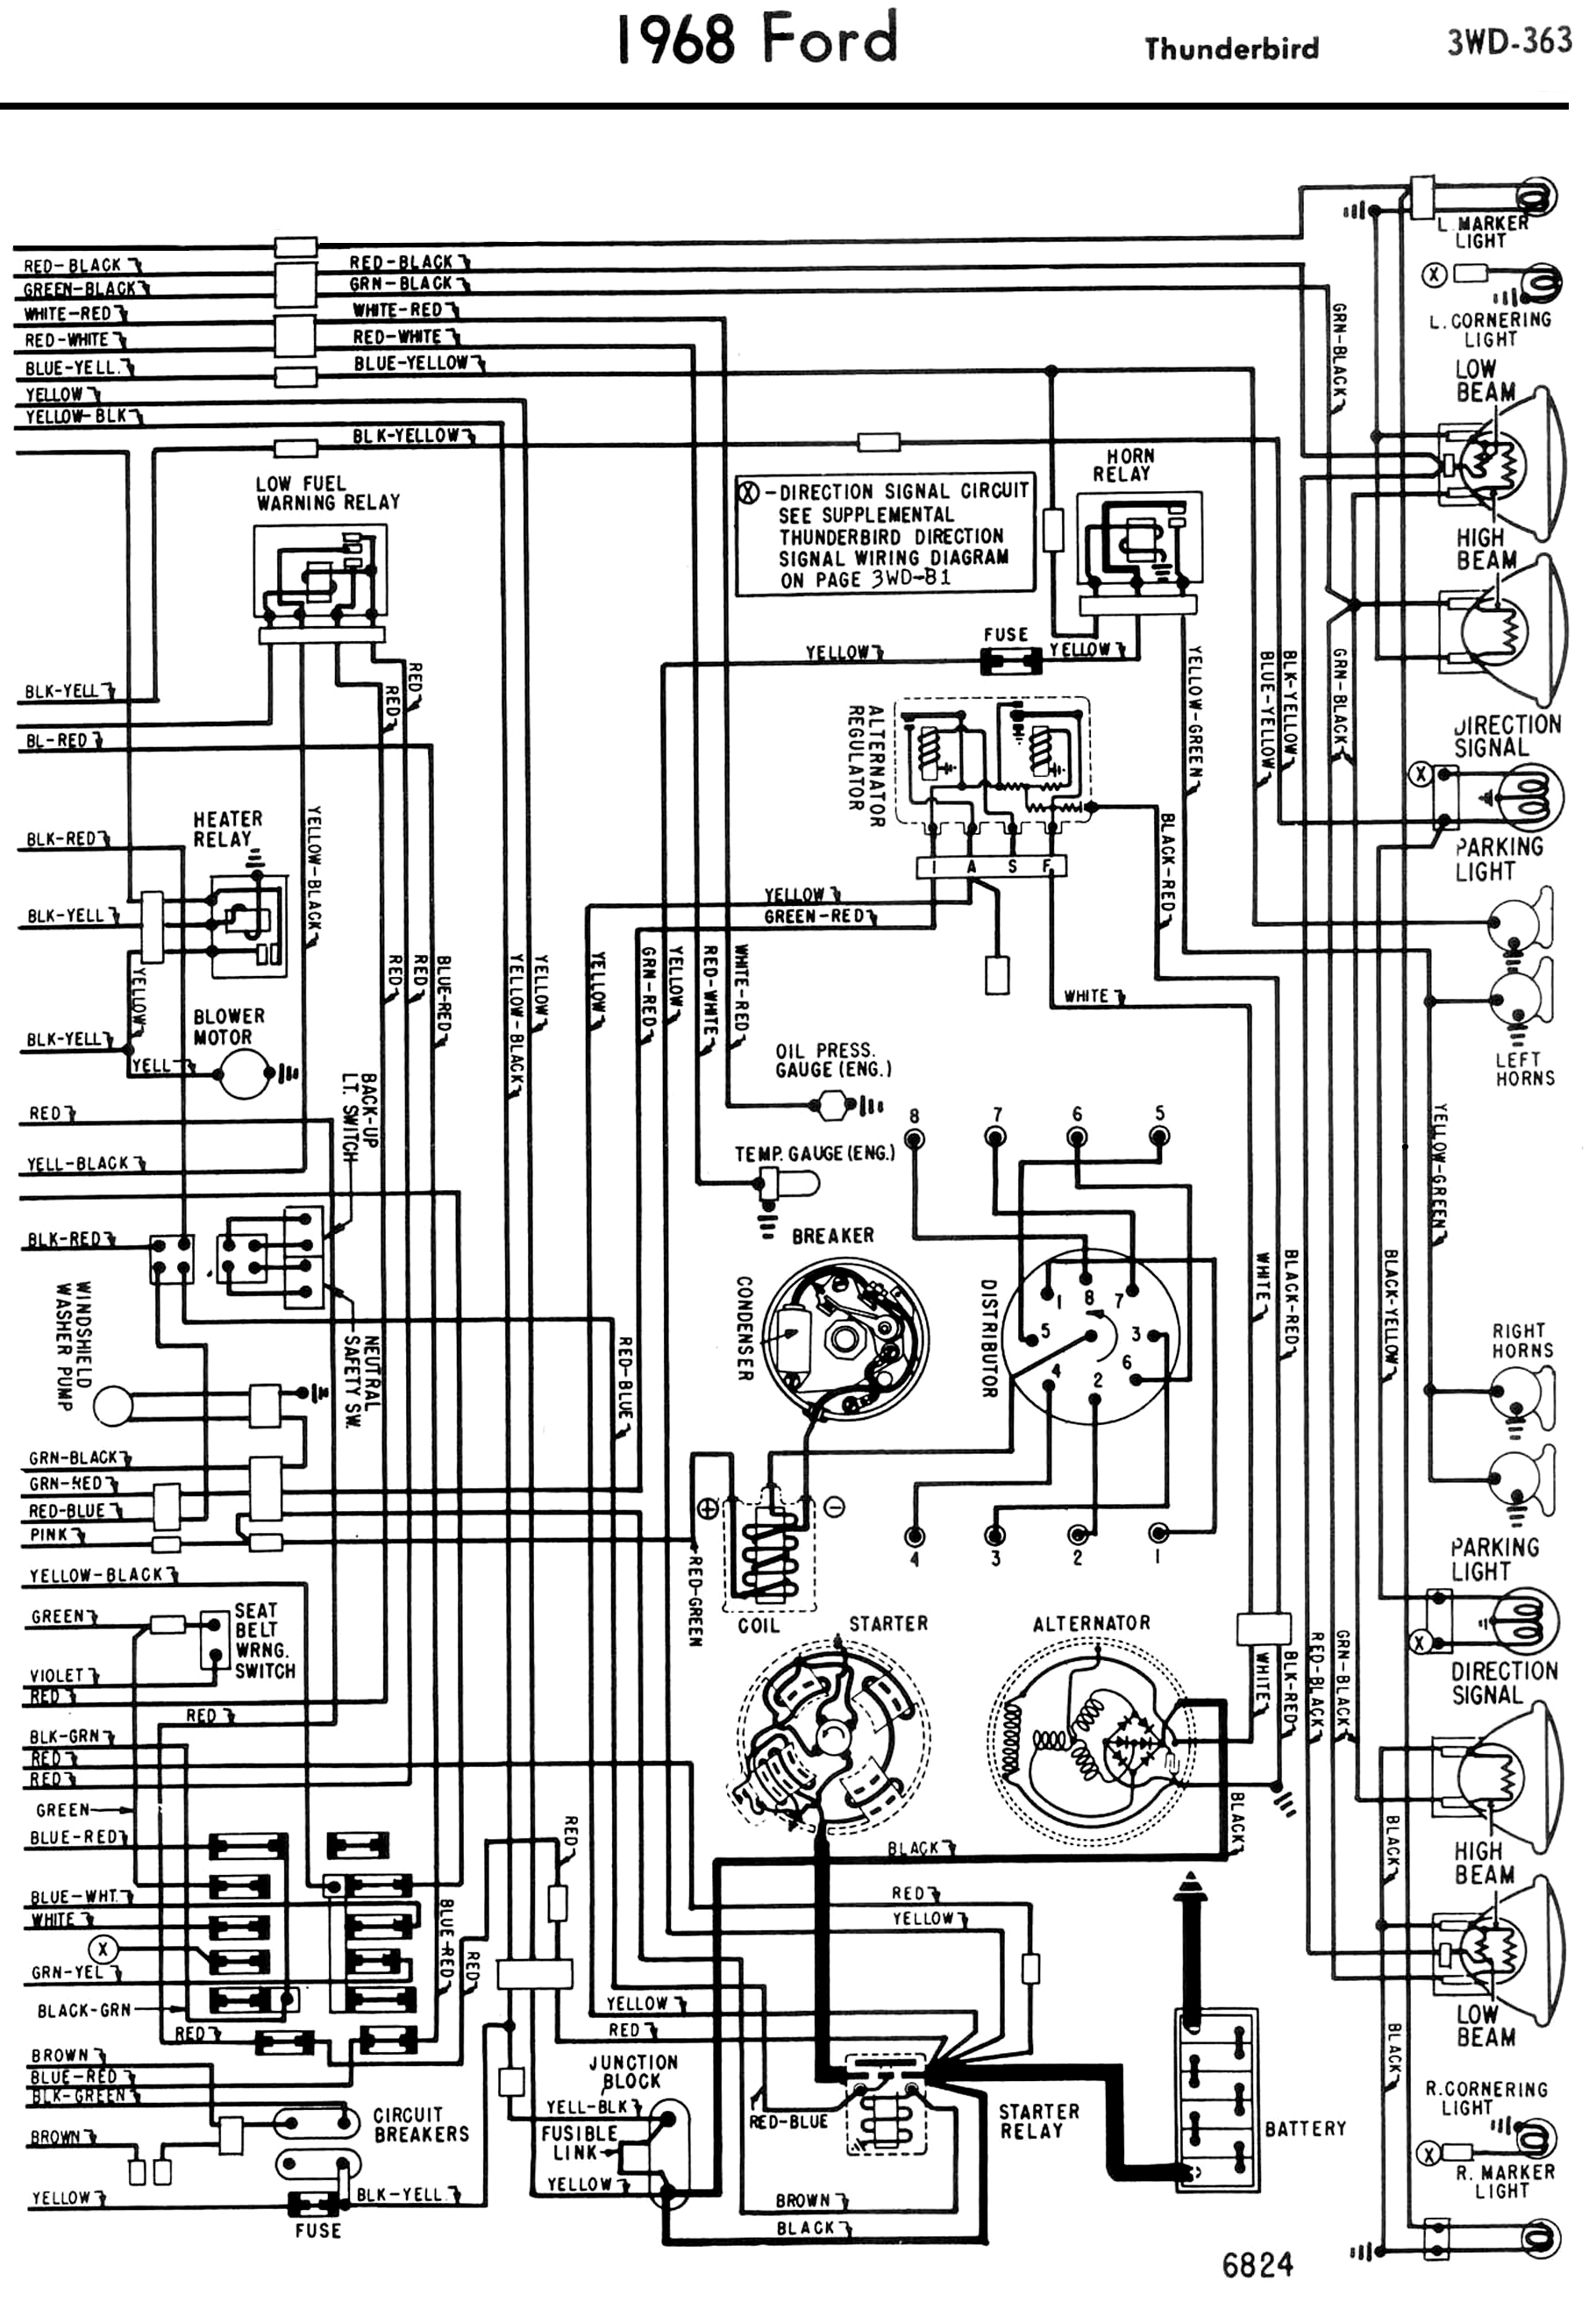 68_wiring_diagram-RH  Dodge Ram Tail Light Wiring Diagram on 2001 dodge ram 1500 tail light wiring diagram, 2006 dodge ram 1500 tail light wiring diagram, 2004 dodge ram 1500 tail light wiring diagram, 2008 dodge ram 1500 tail light wiring diagram, 2004 dodge ram 3500 tail light wiring diagram, 2005 dodge ram 1500 tail light wiring diagram,